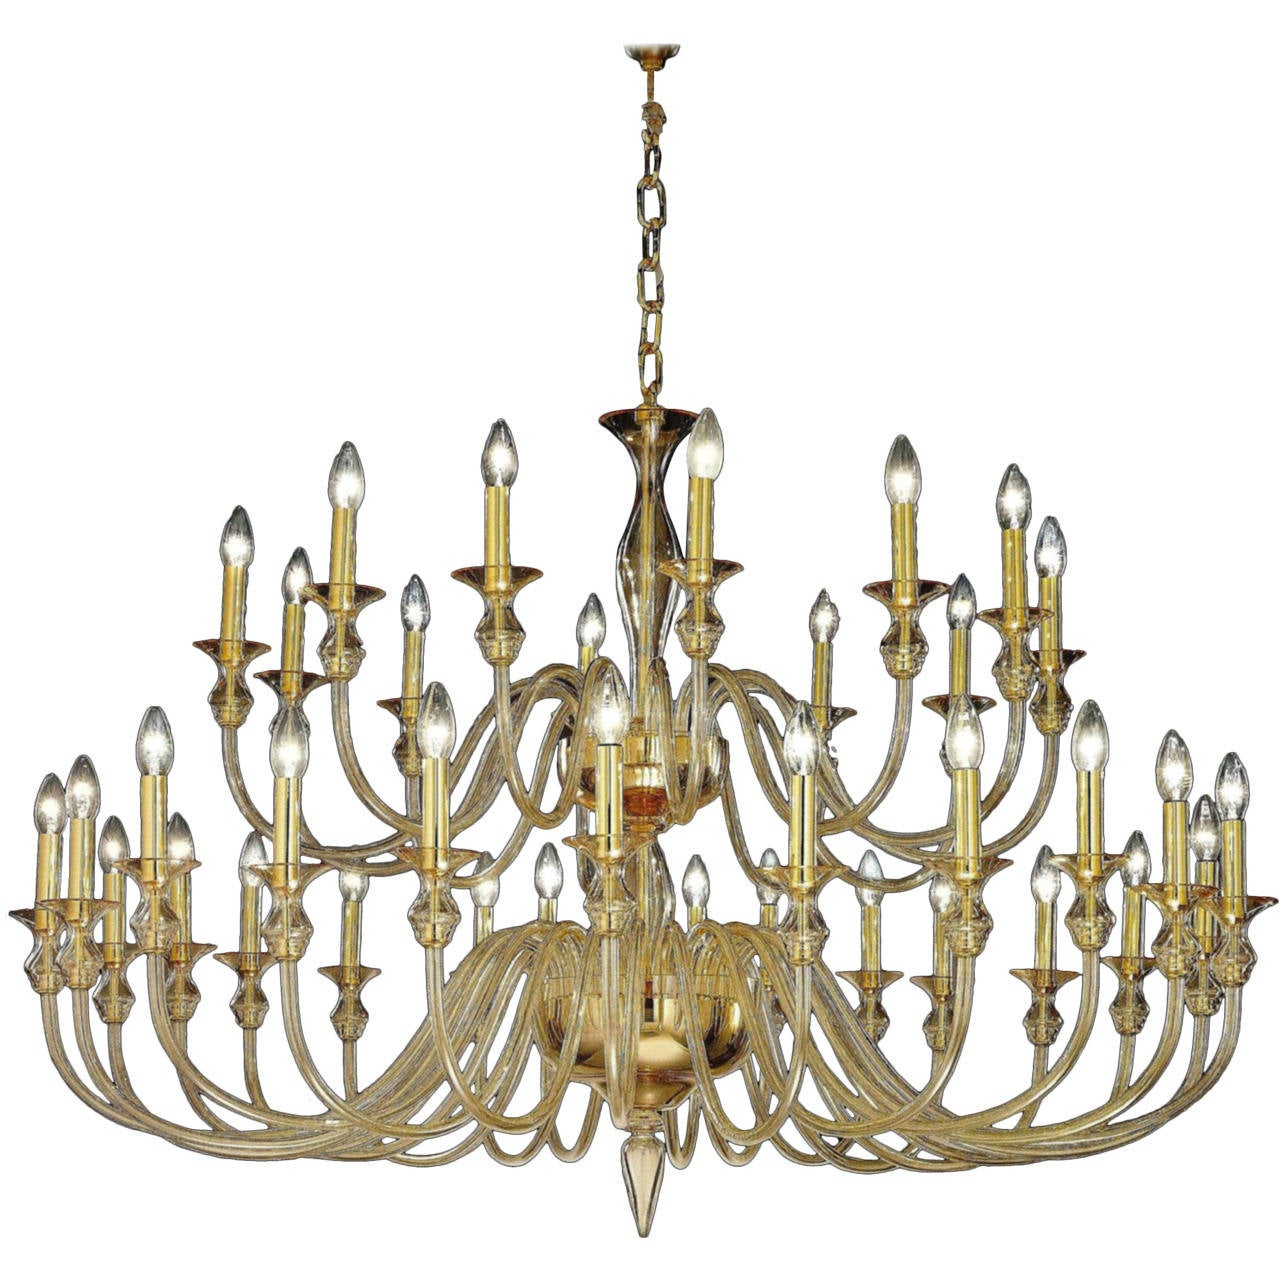 Large, 36 Arm, Clear Amber Murano /Venetian Glass Modern Neoclassical Chandelier For Sale